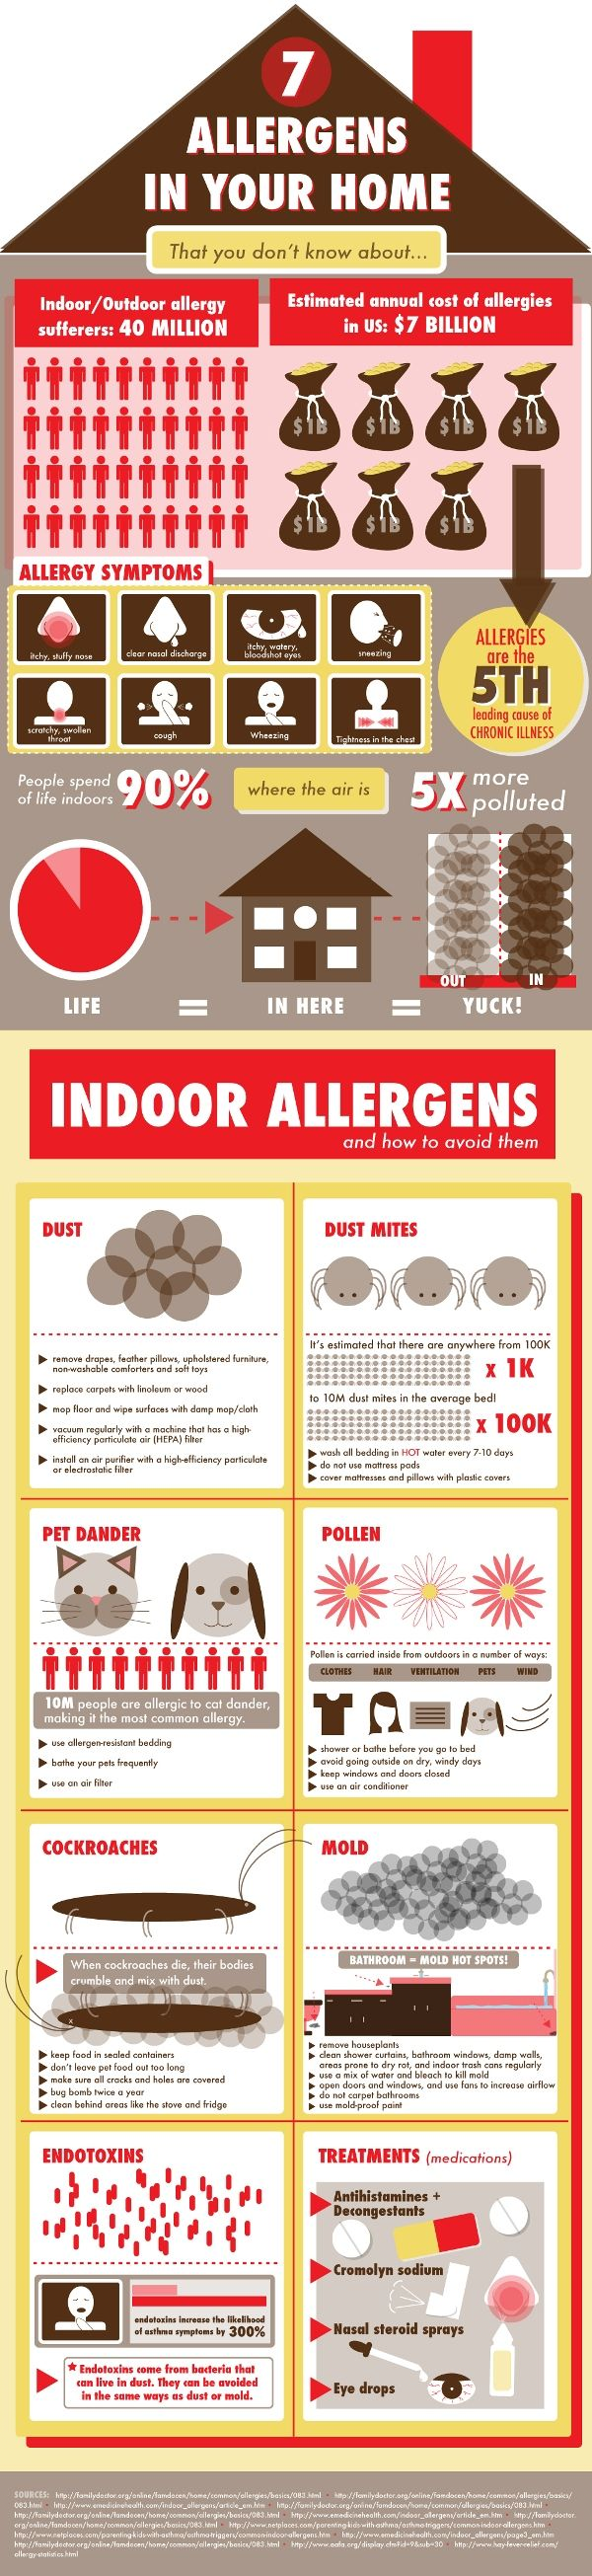 #Infographic: 7 Allergens in your home that you didn't know about - As the following graphic shows, there may be more than one reason to seek out allergy-friendly products before the first snowfall.